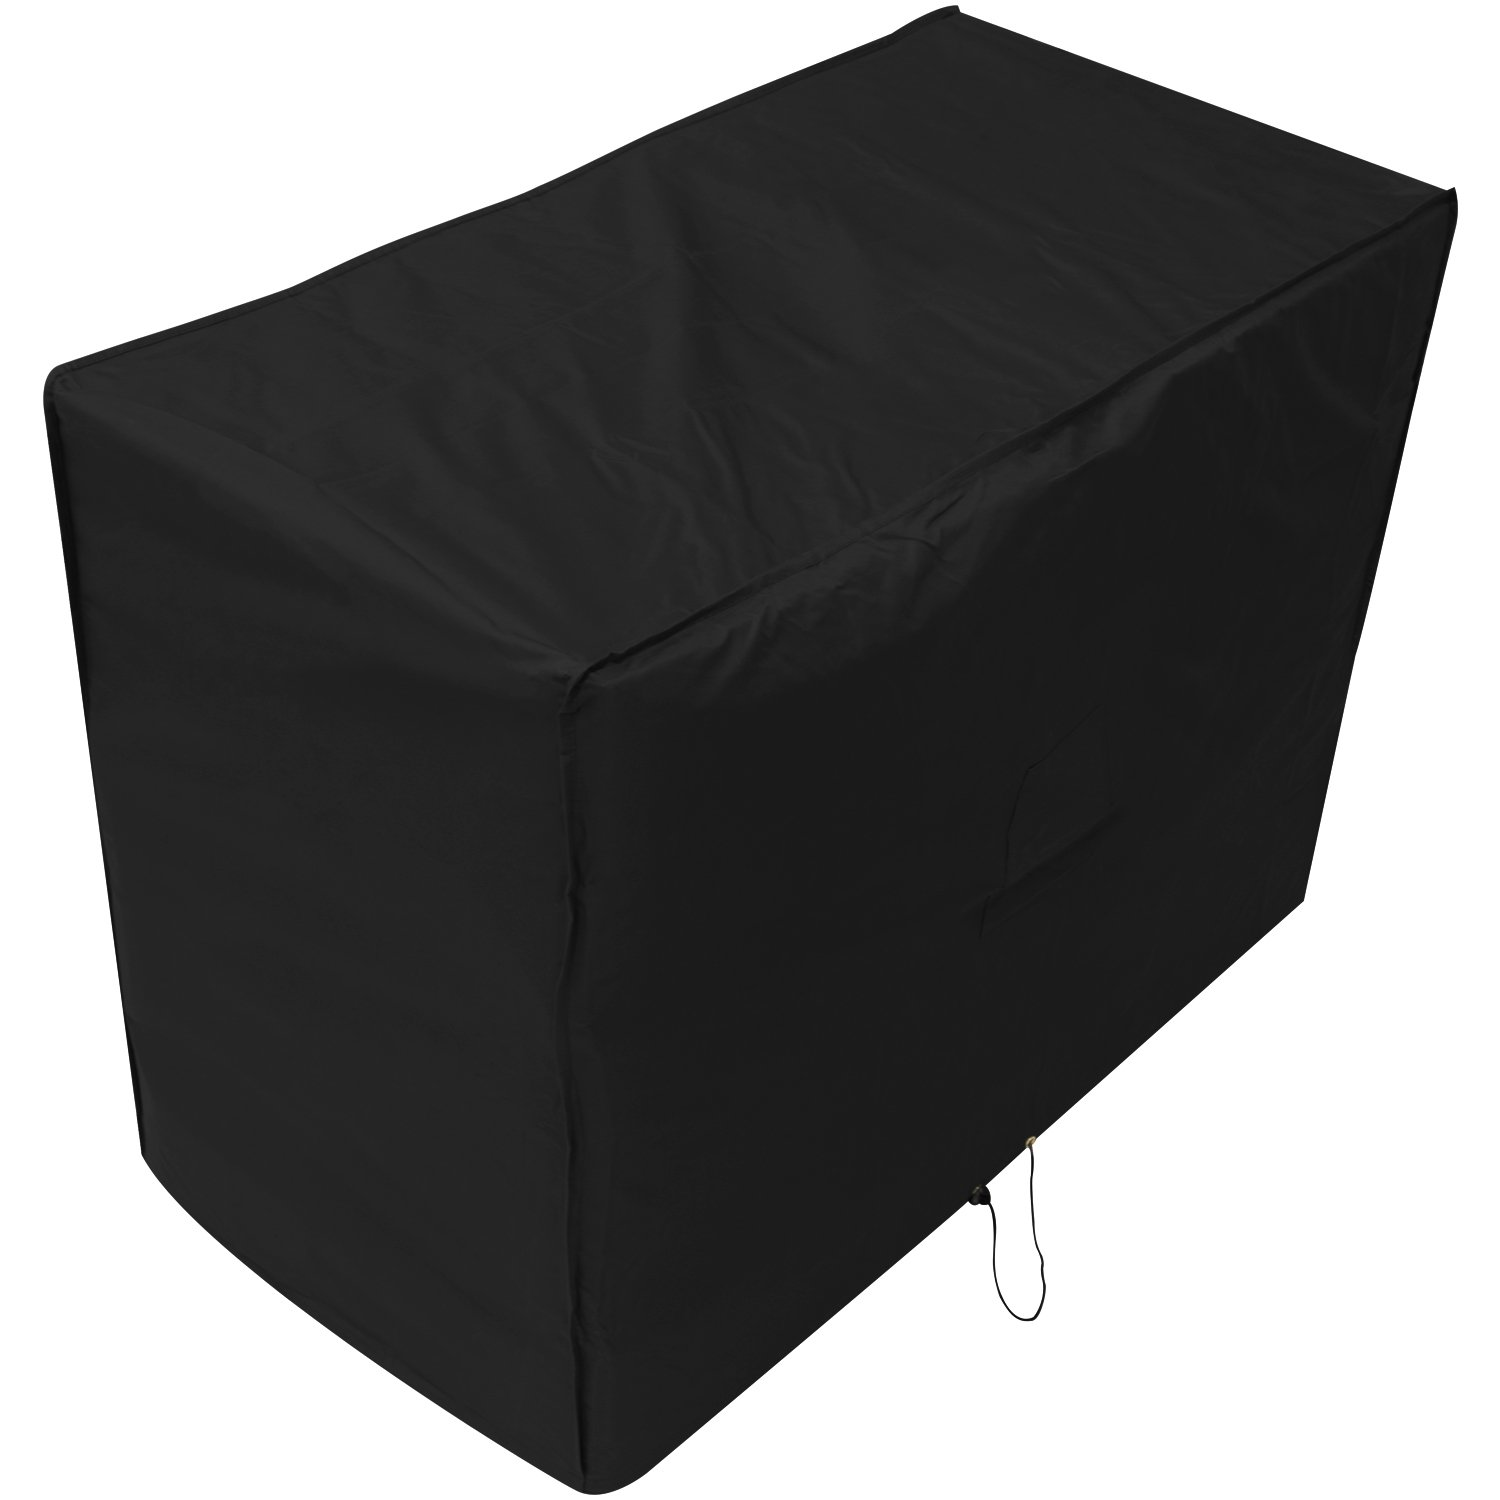 Black 3 Seater Outdoor Garden Patio Bench Cover 0.9m x 1.6m x 0.68m/3ft x 5.2ft x 2.2ft 5 YEAR GUARANTEE Woodside